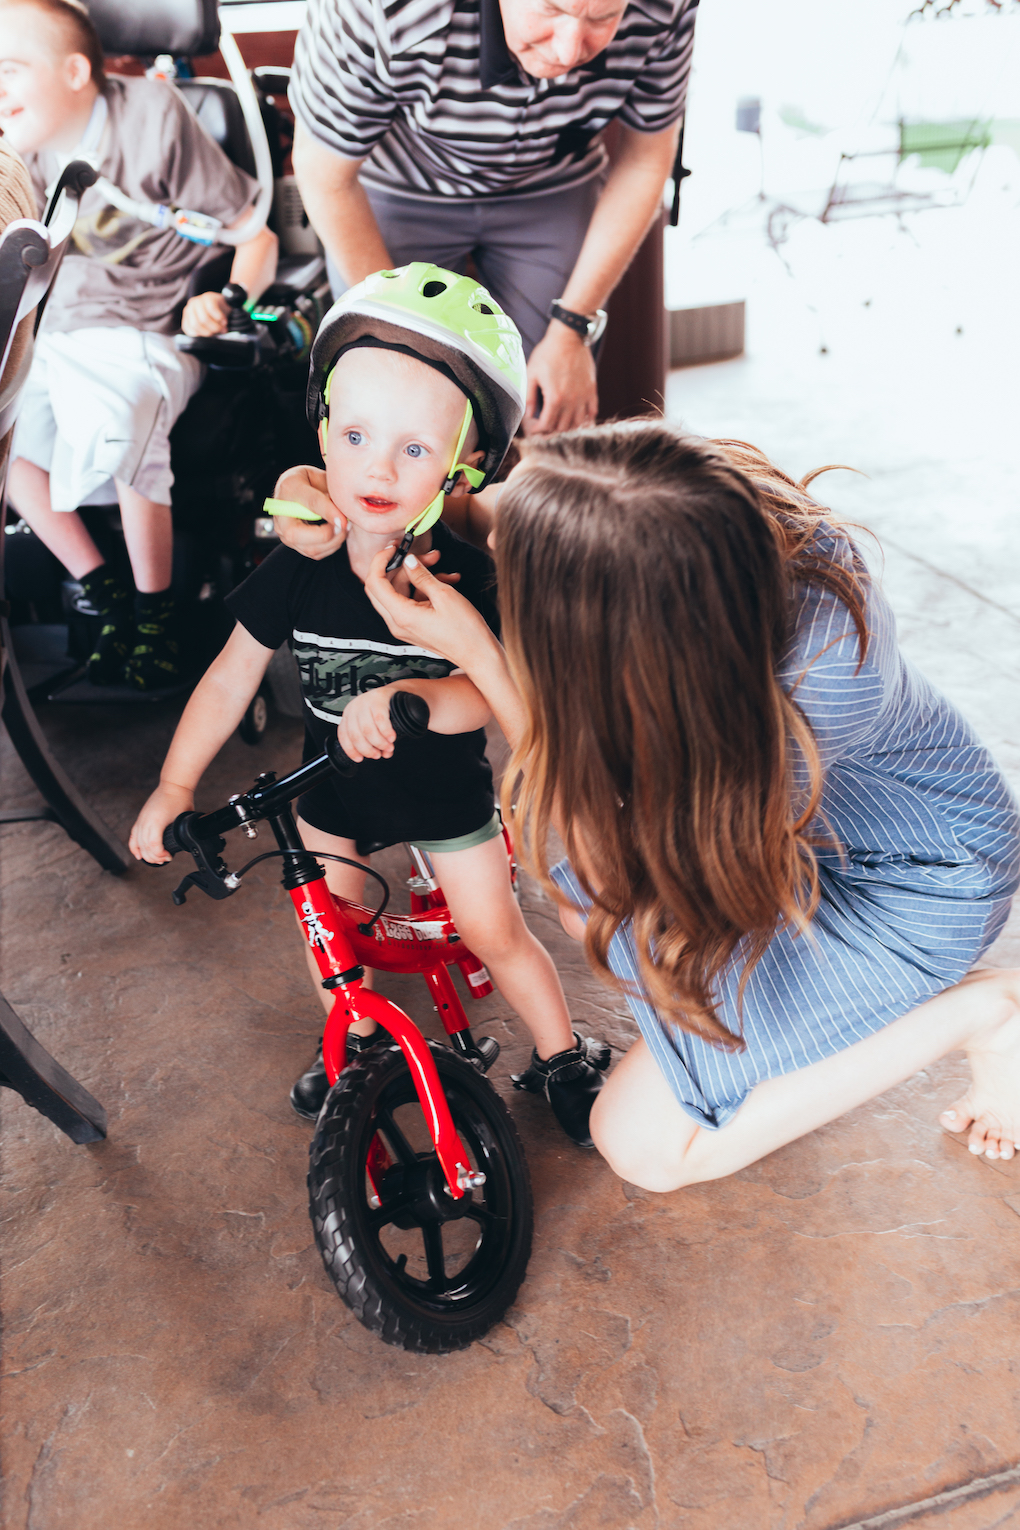 KINGS HAPPY UN-BIRTHDAY - KIDS BALL PARTY by Utah blogger Dani Marie - Toddler riding red balance bike with bright green helmet on